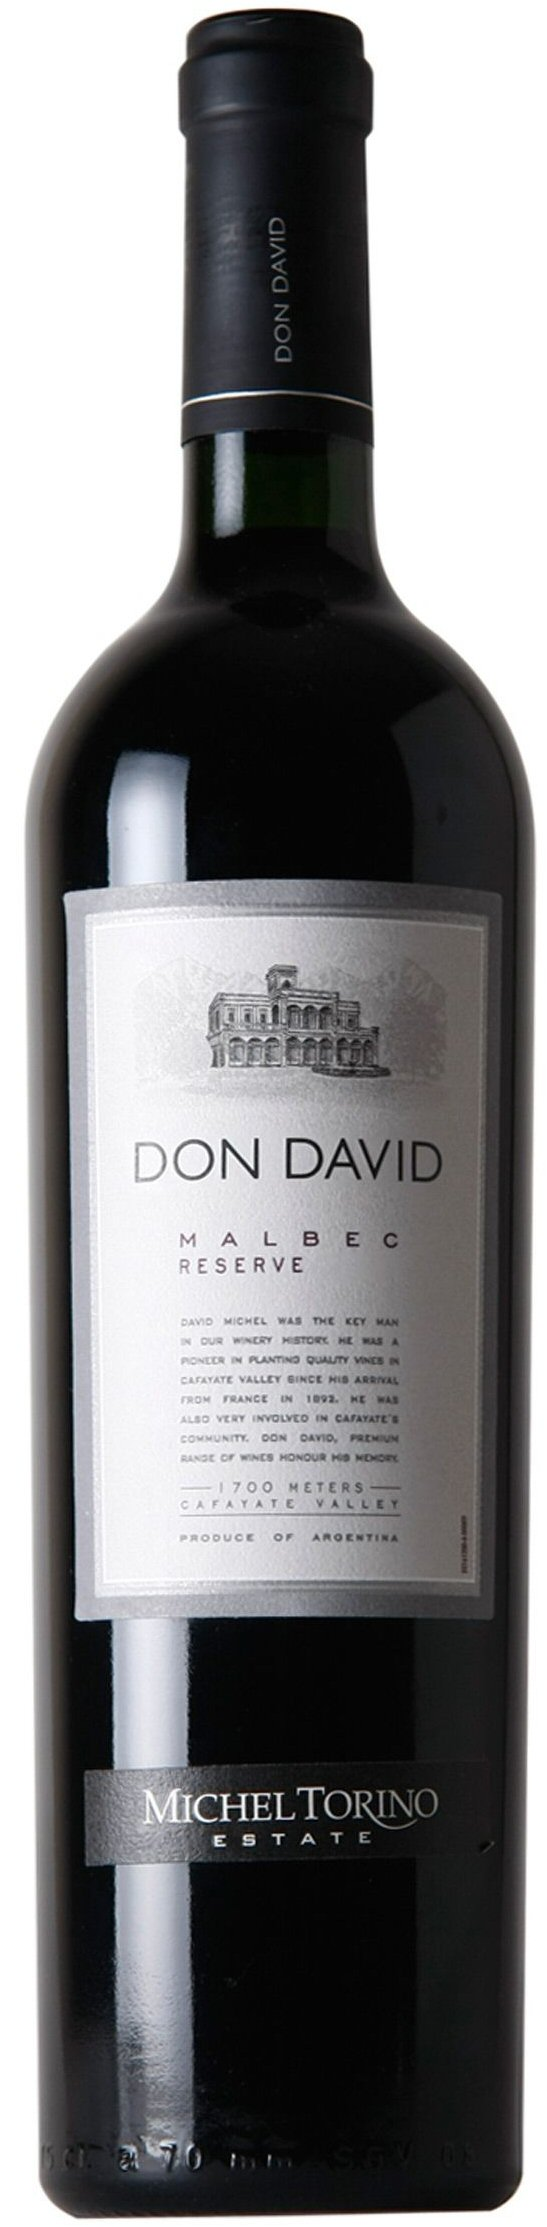 Michel Torino  Don David Reserve Malbec 2014